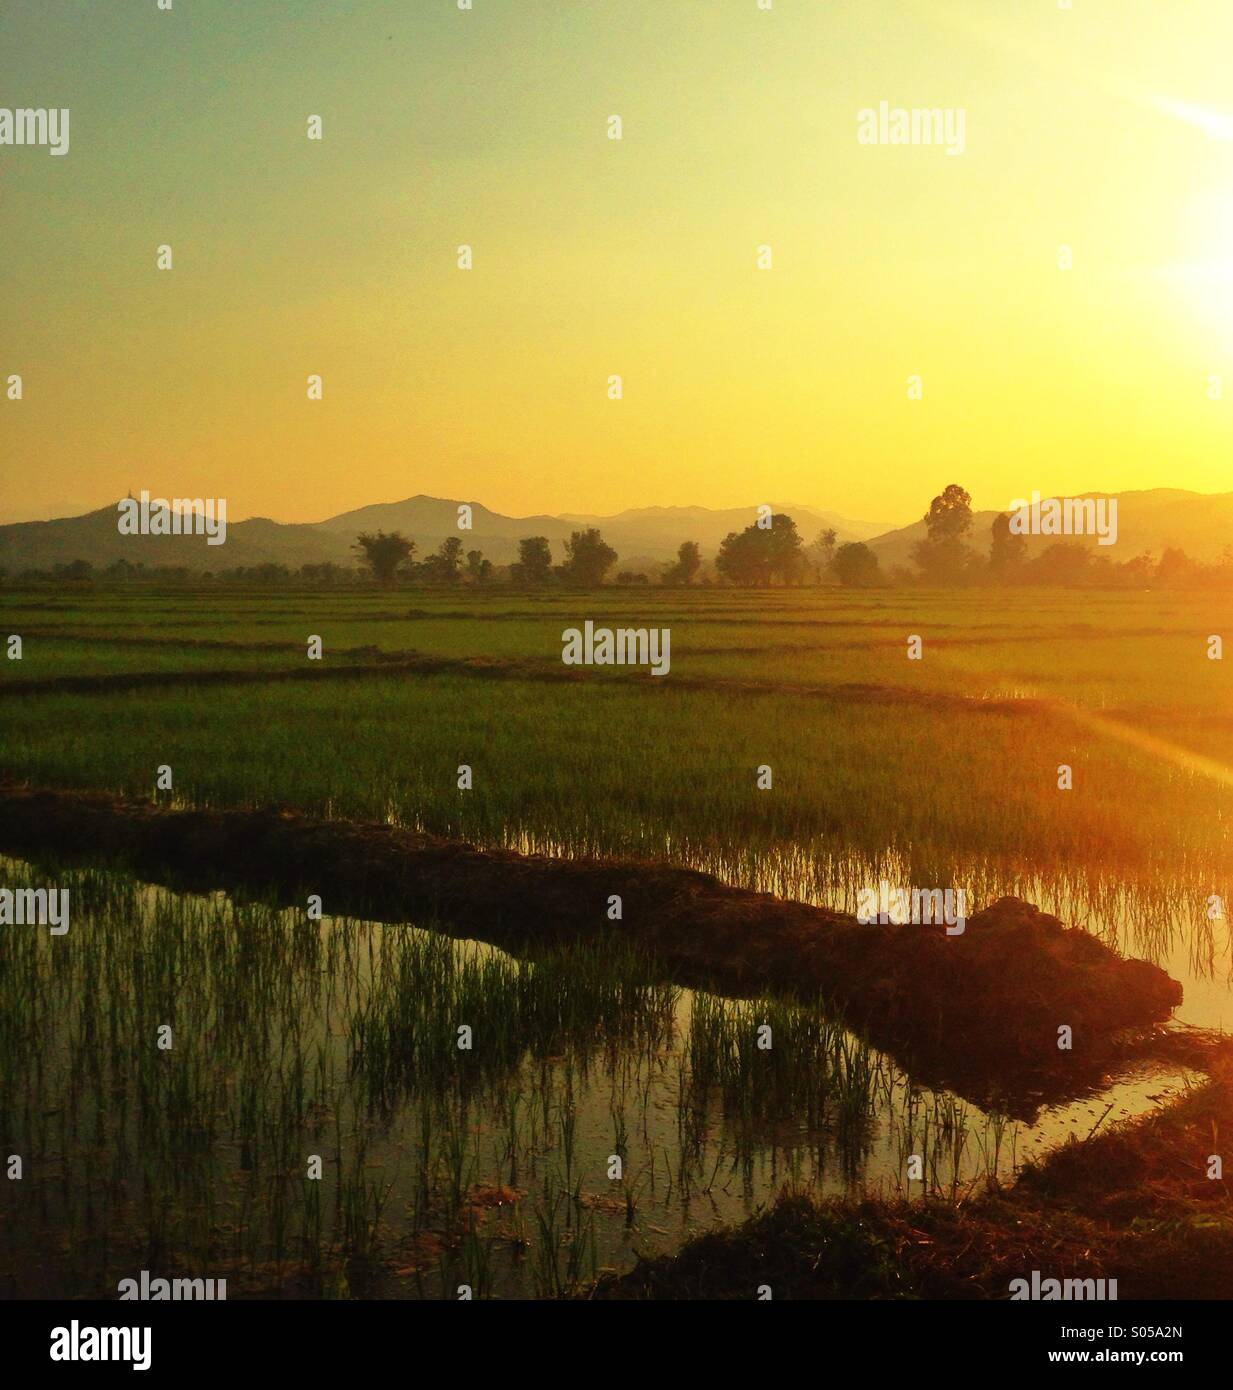 Rice field sunsets - Stock Image